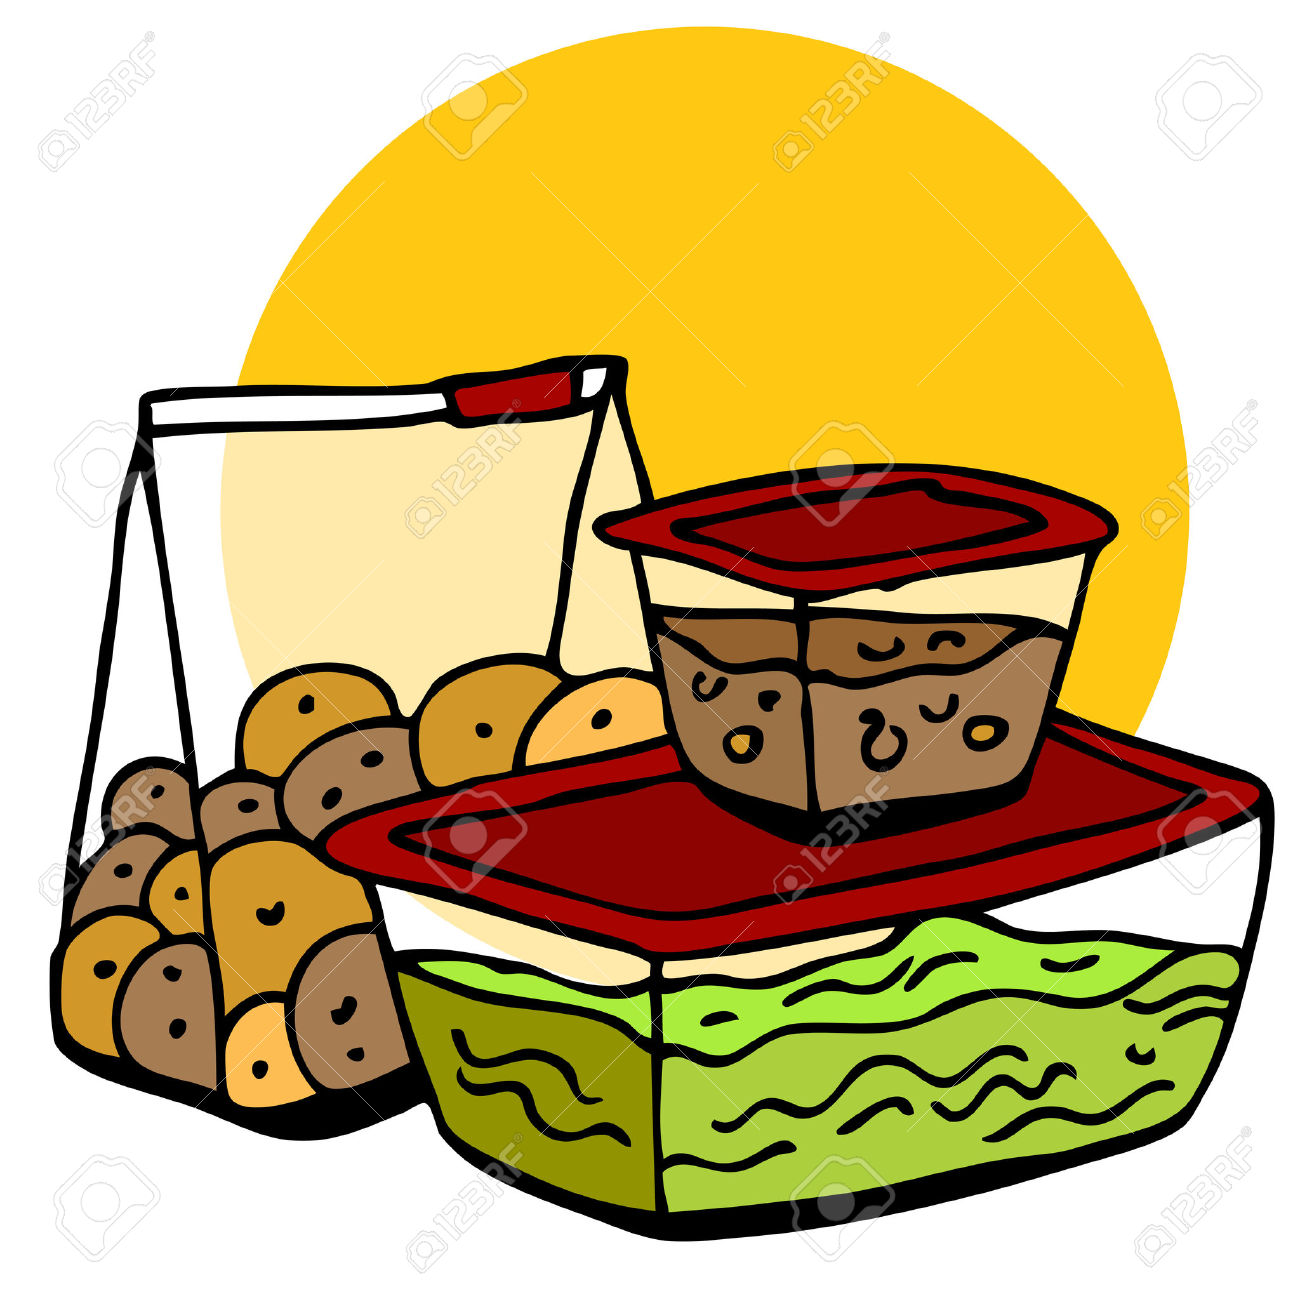 Food On Top Of A Pot Clipart.